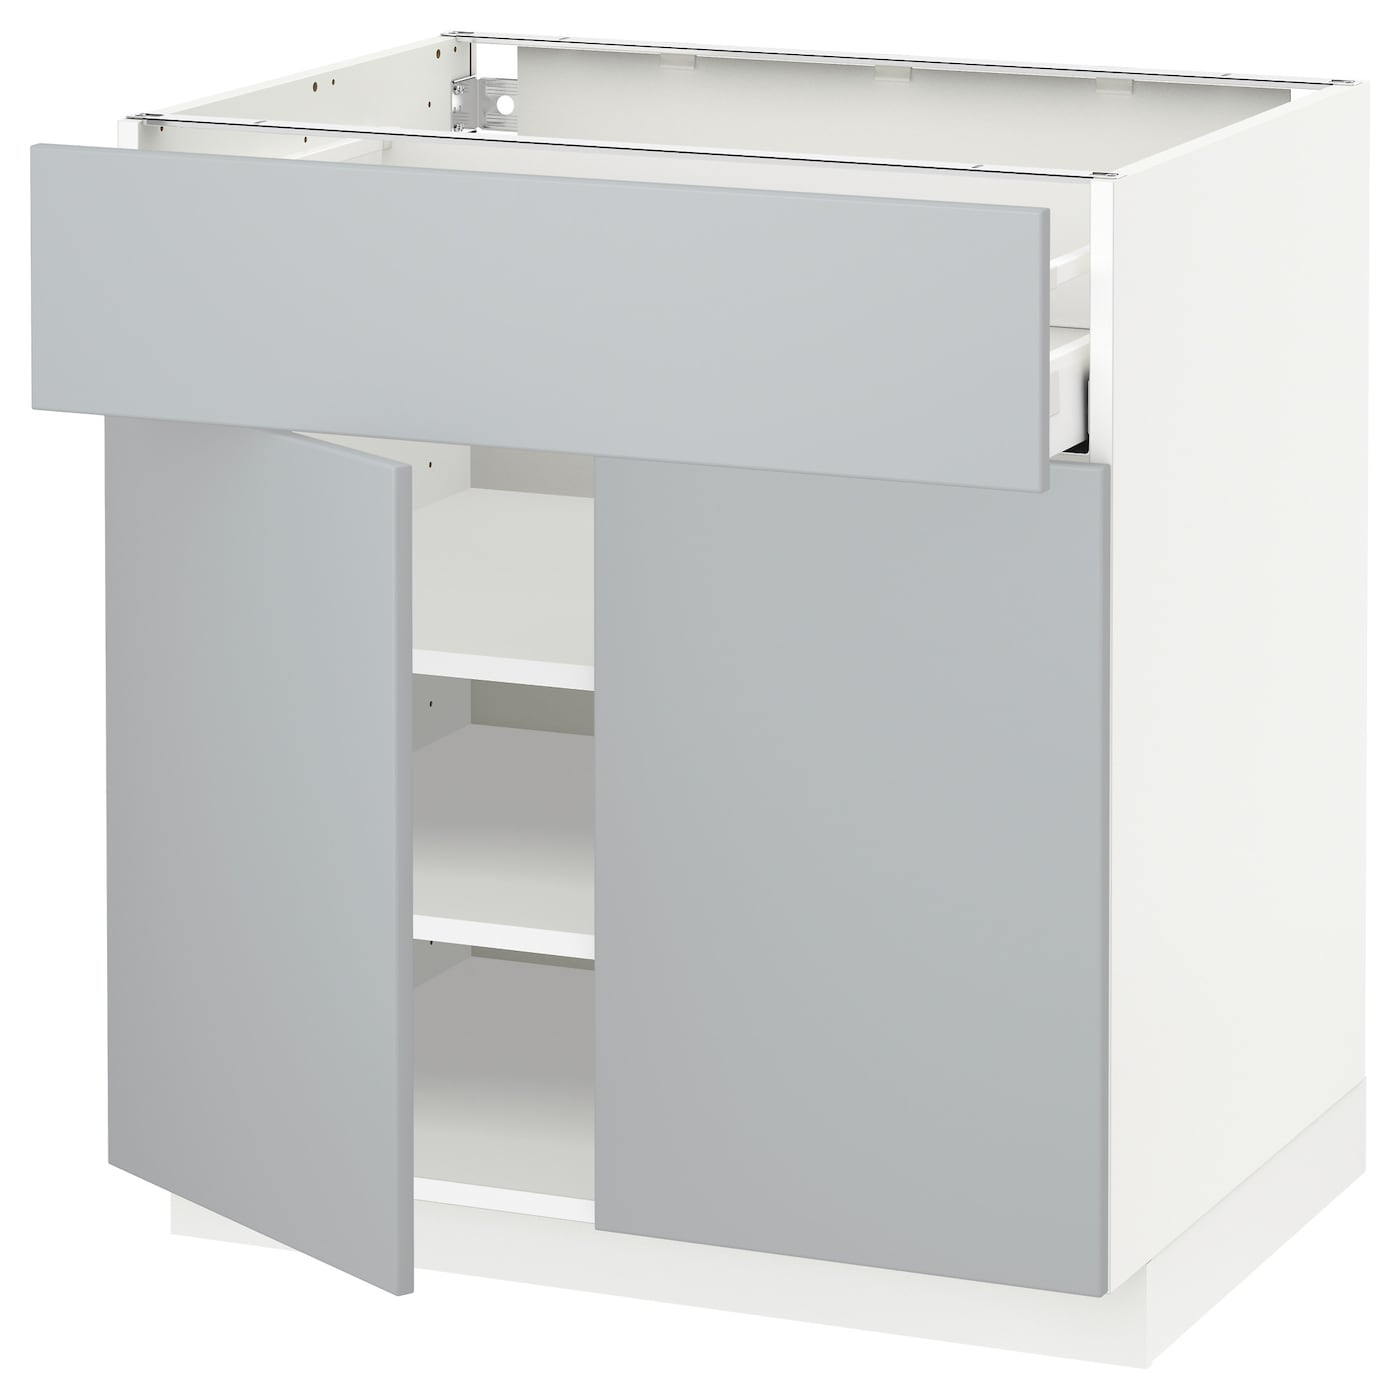 metod maximera base cabinet with drawer 2 doors white veddinge grey 80 x 60 cm ikea. Black Bedroom Furniture Sets. Home Design Ideas